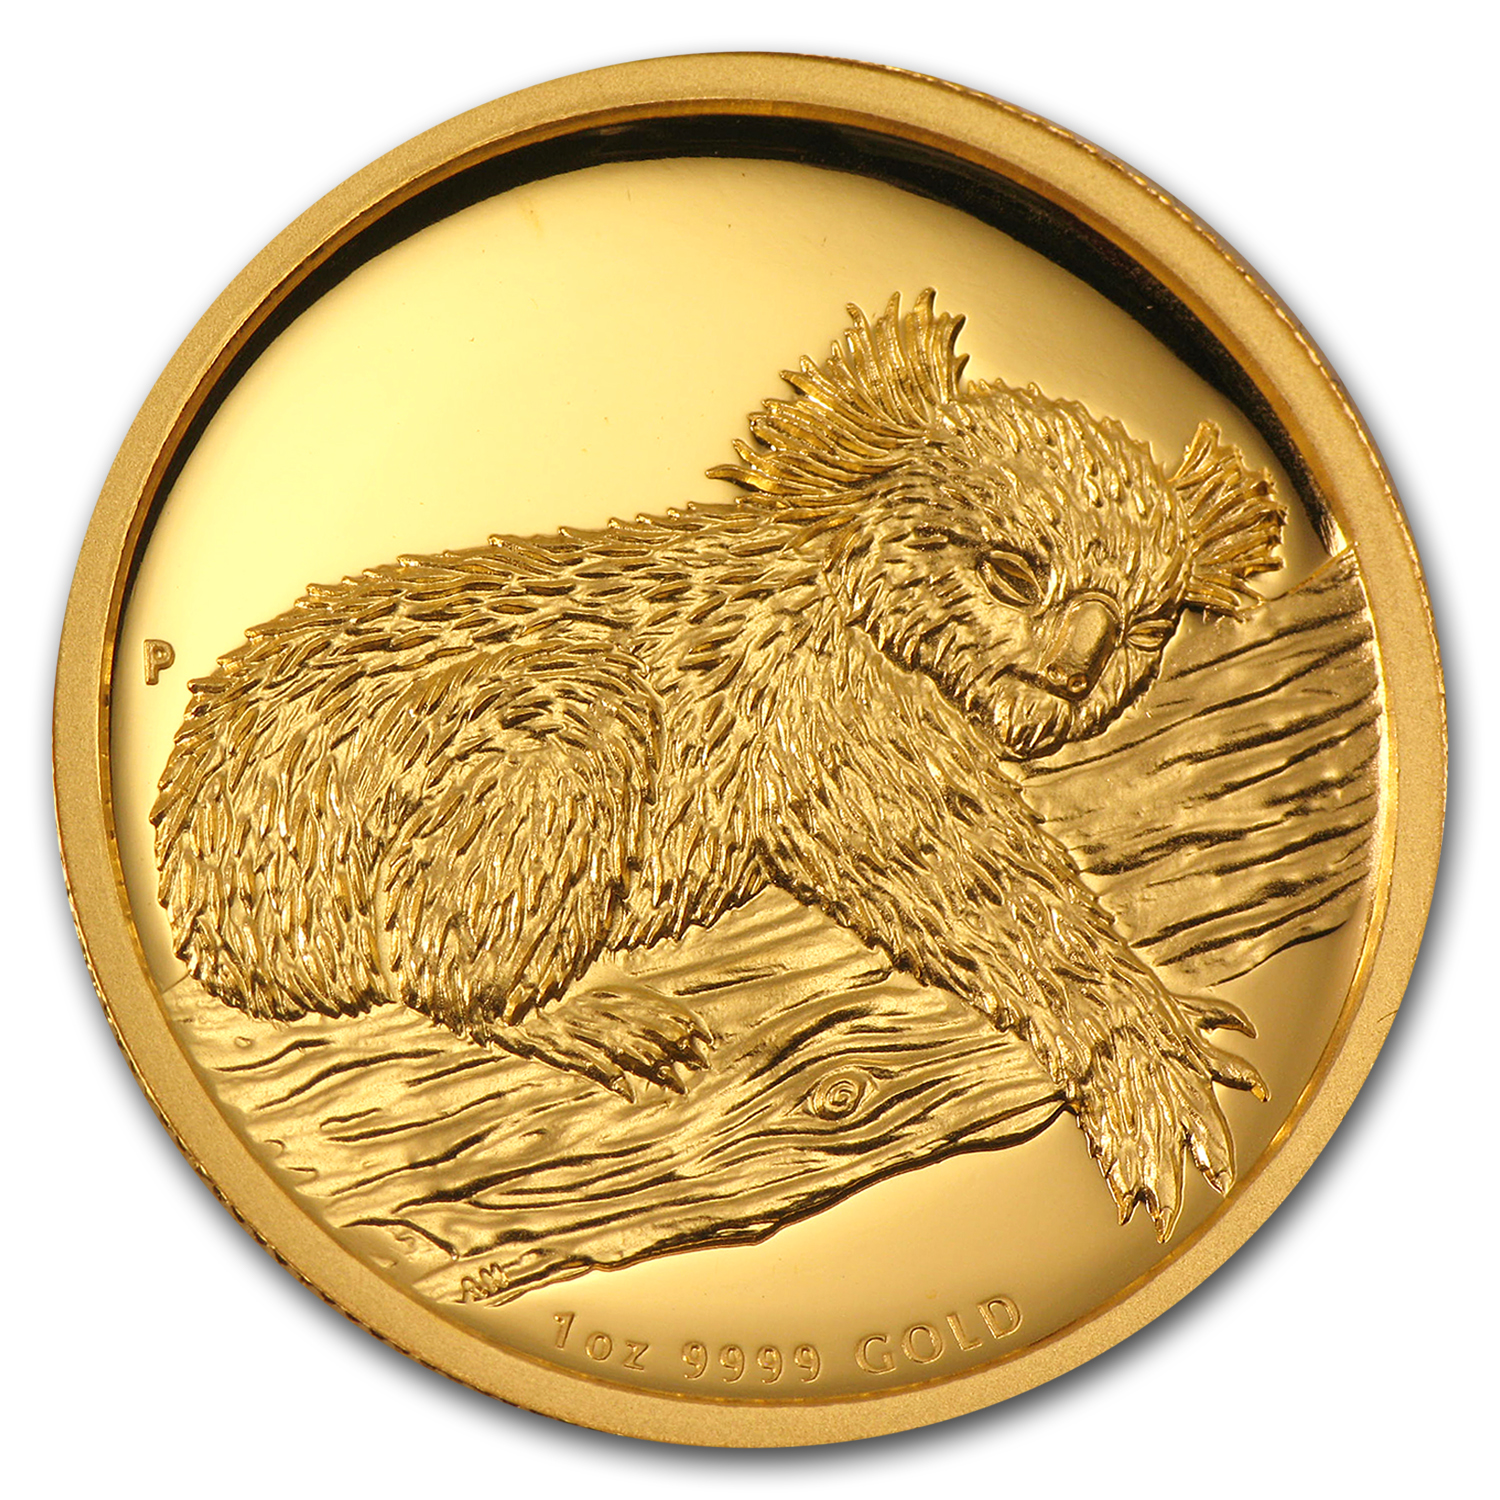 2012 Australia 1 oz Gold Koala Proof (High Relief, Box & COA)